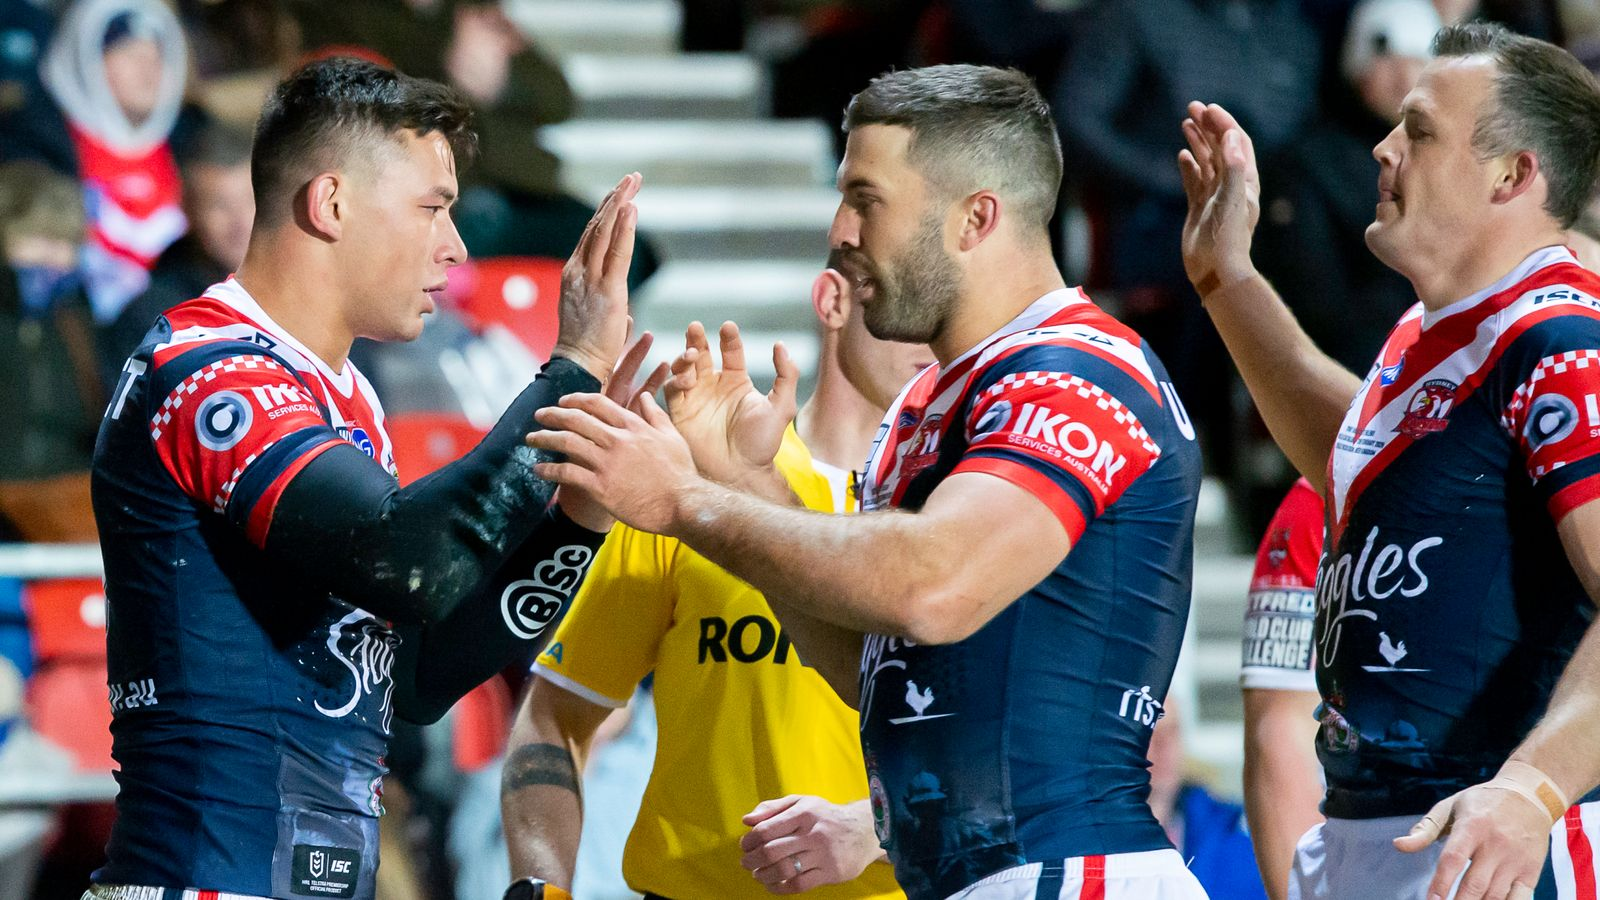 St Helens 12-20 Sydney: Brave Saints fall short against Roosters